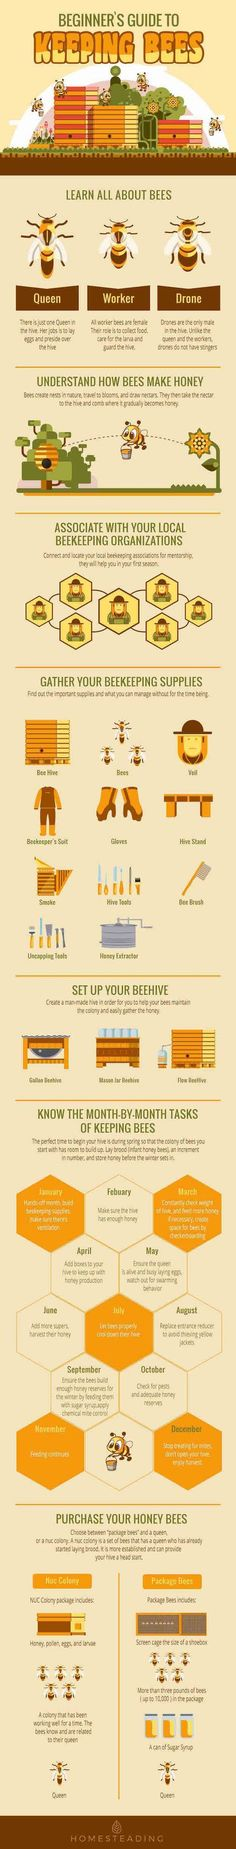 Beginners Guide To Keeping Bees